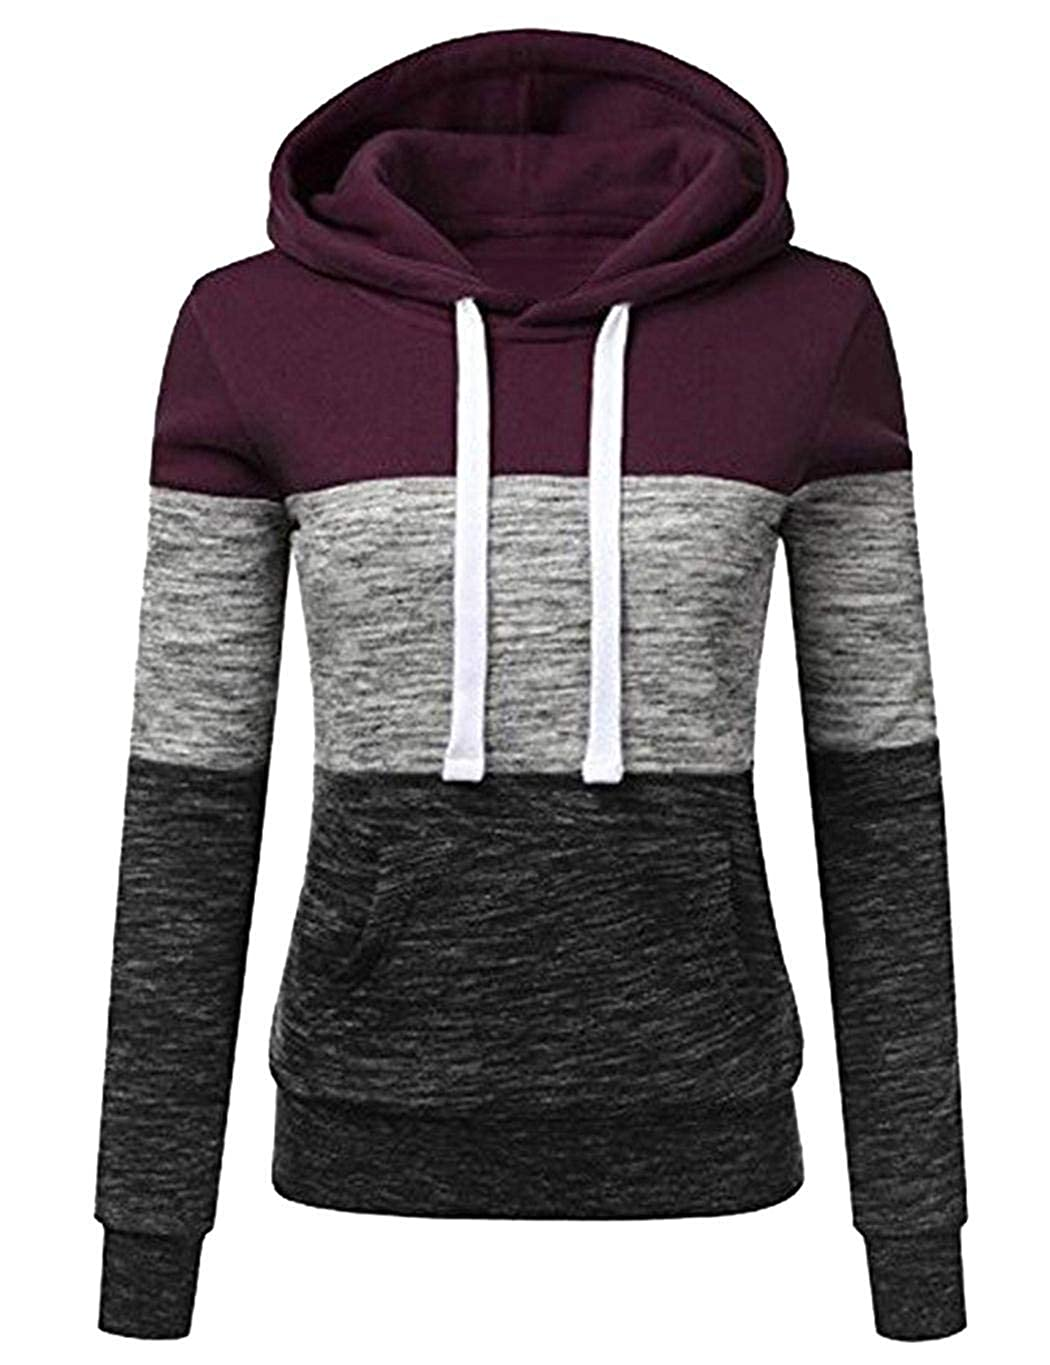 Kindes Women Casual Sweatshirt Patchwork Long Sleeve Hooded Pullover with Front Pocket Fashion Hoodies